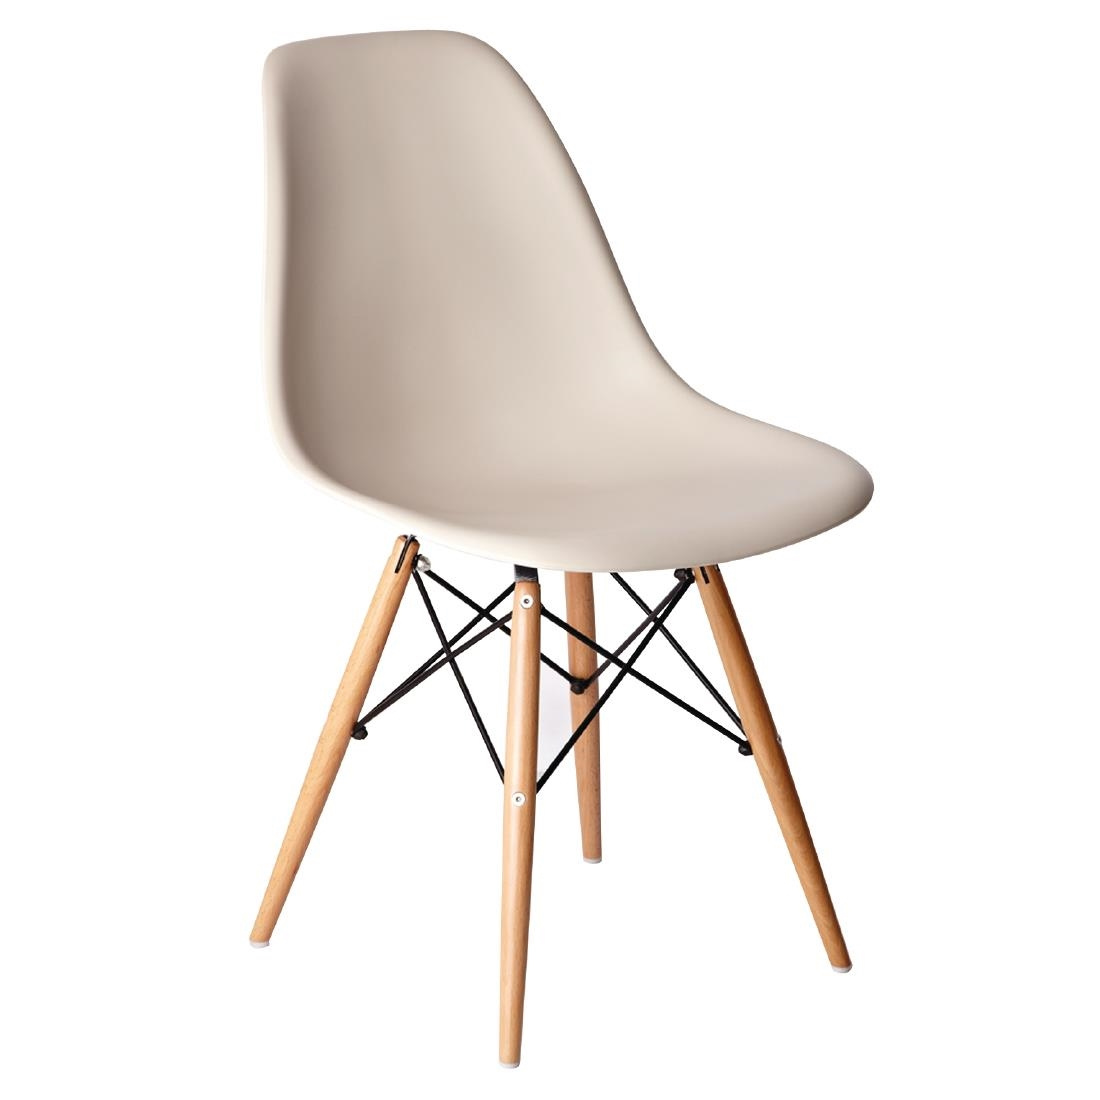 Eames Chair Beige Bolero Beige Polypropylene Replica Eames Chairs Pack Of 2